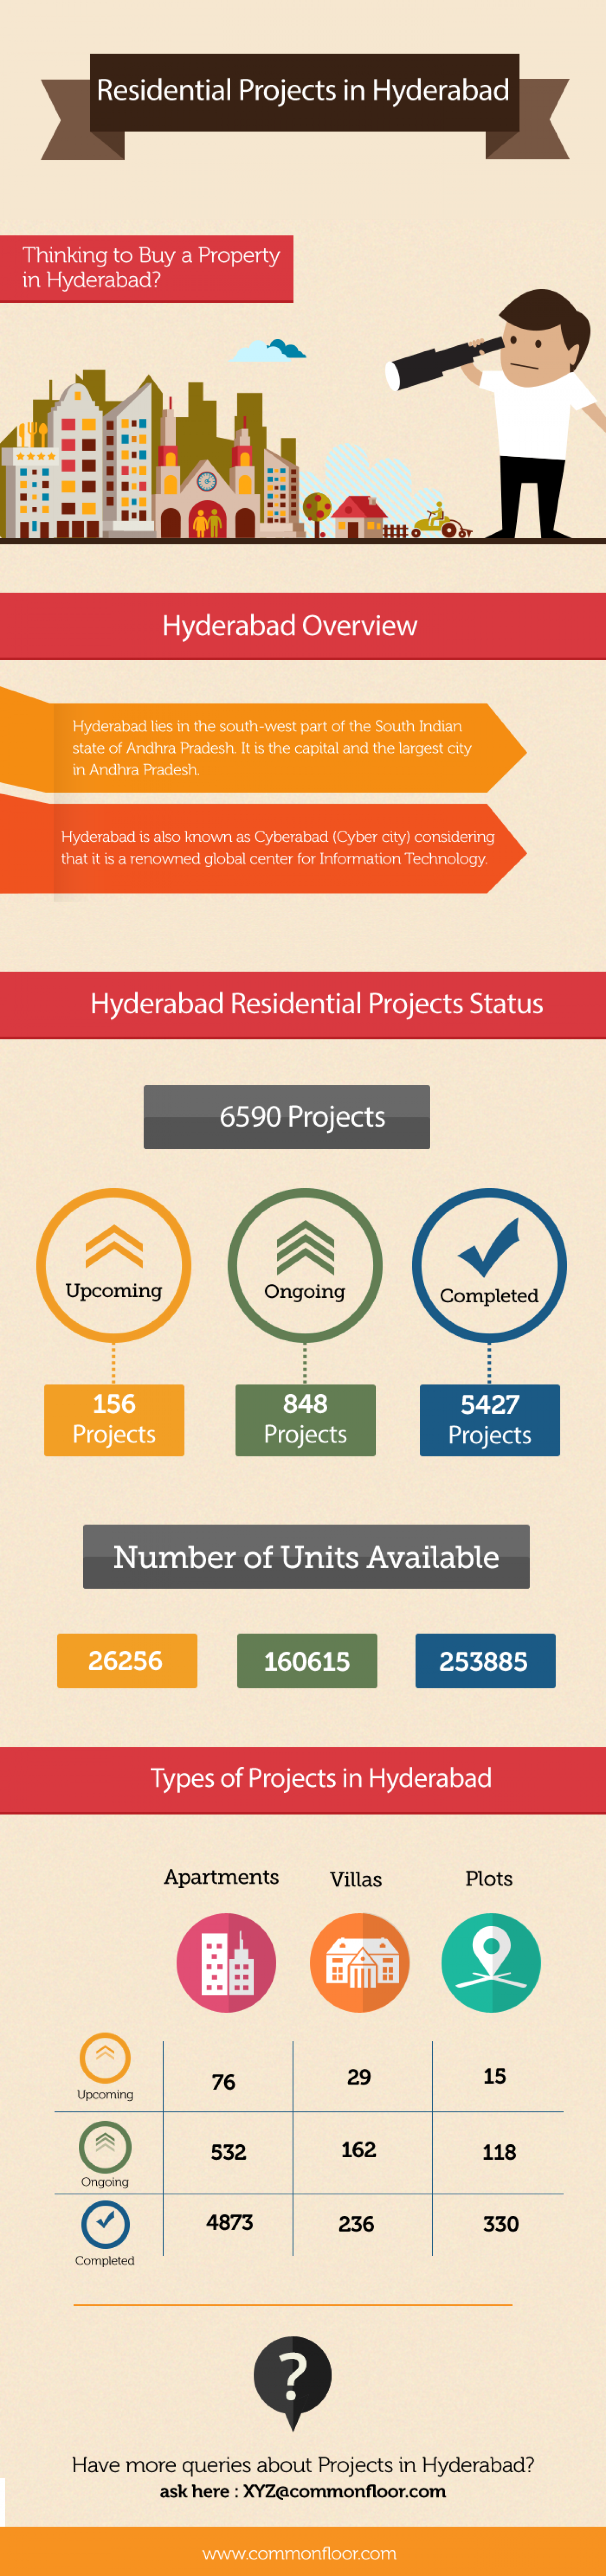 Residential Projects in Hyderabad Infographic